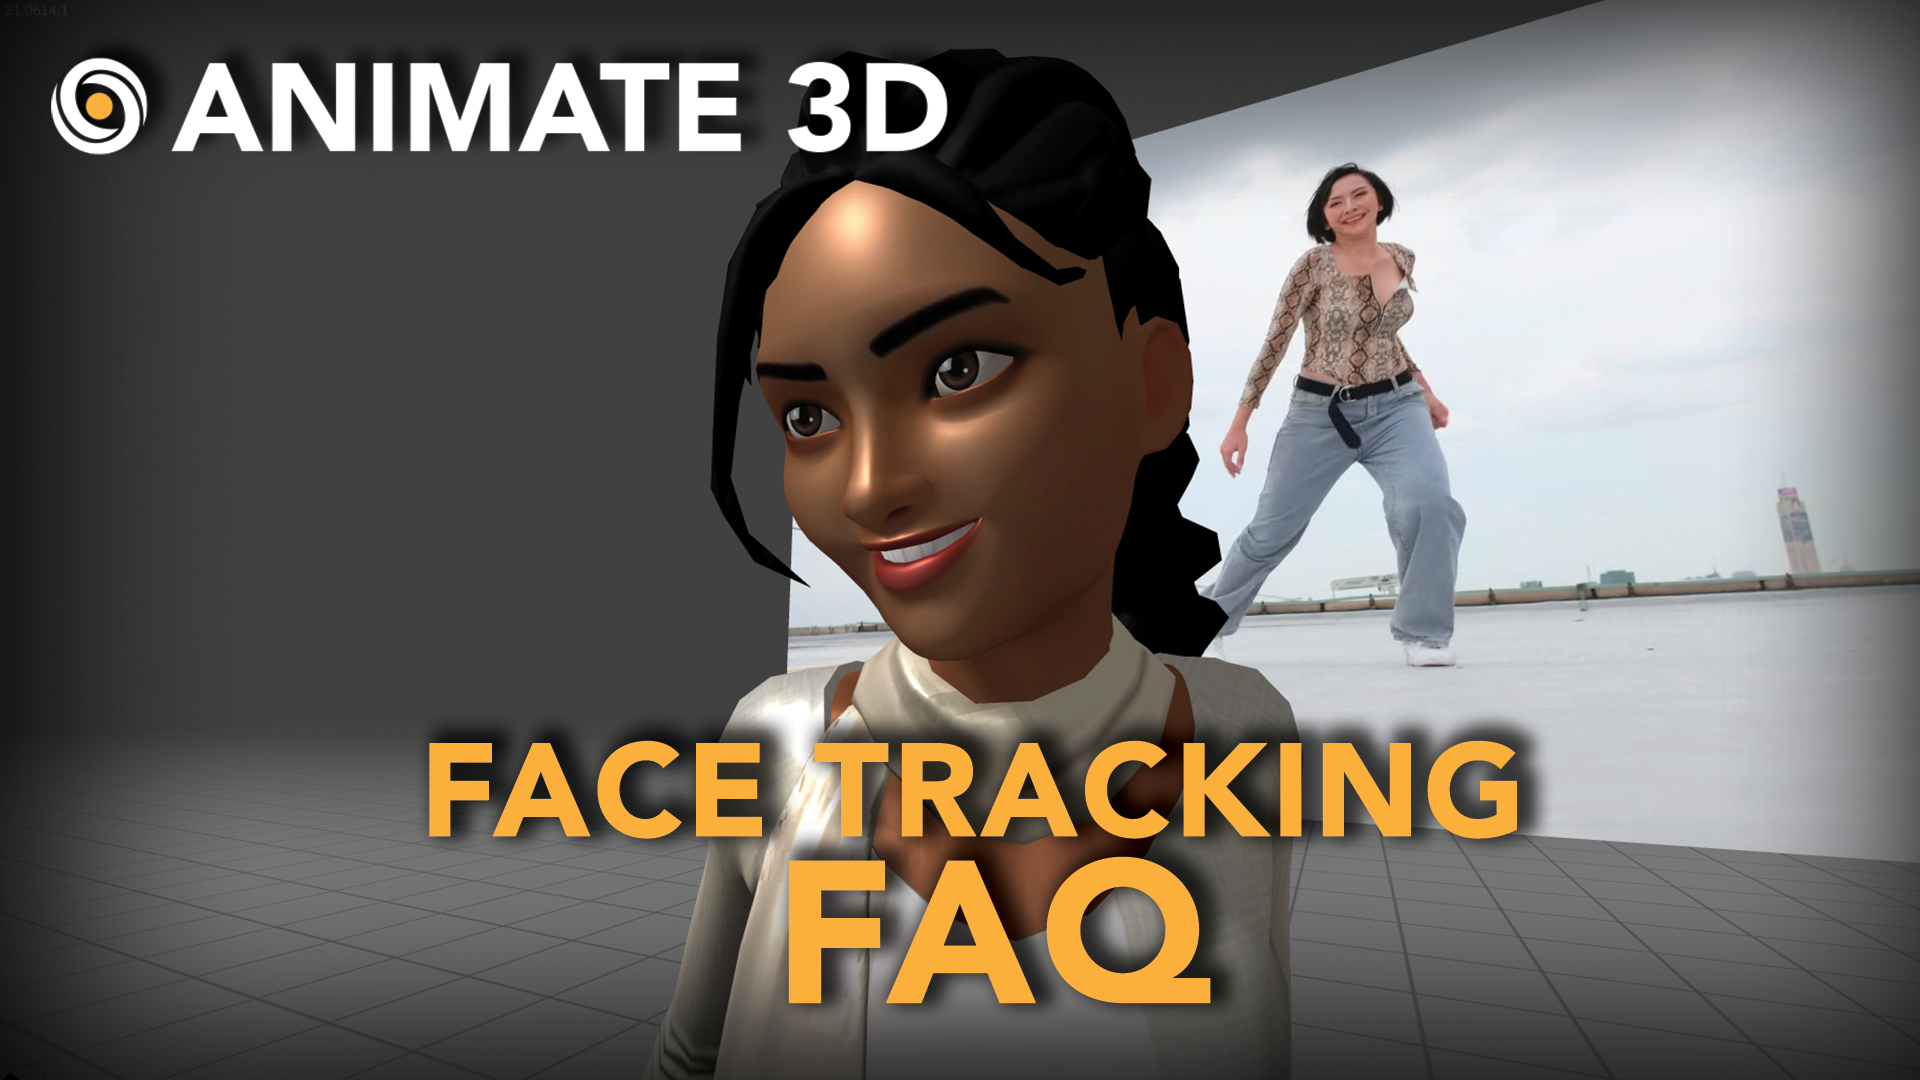 Animate 3D: Face Tracking FAQ